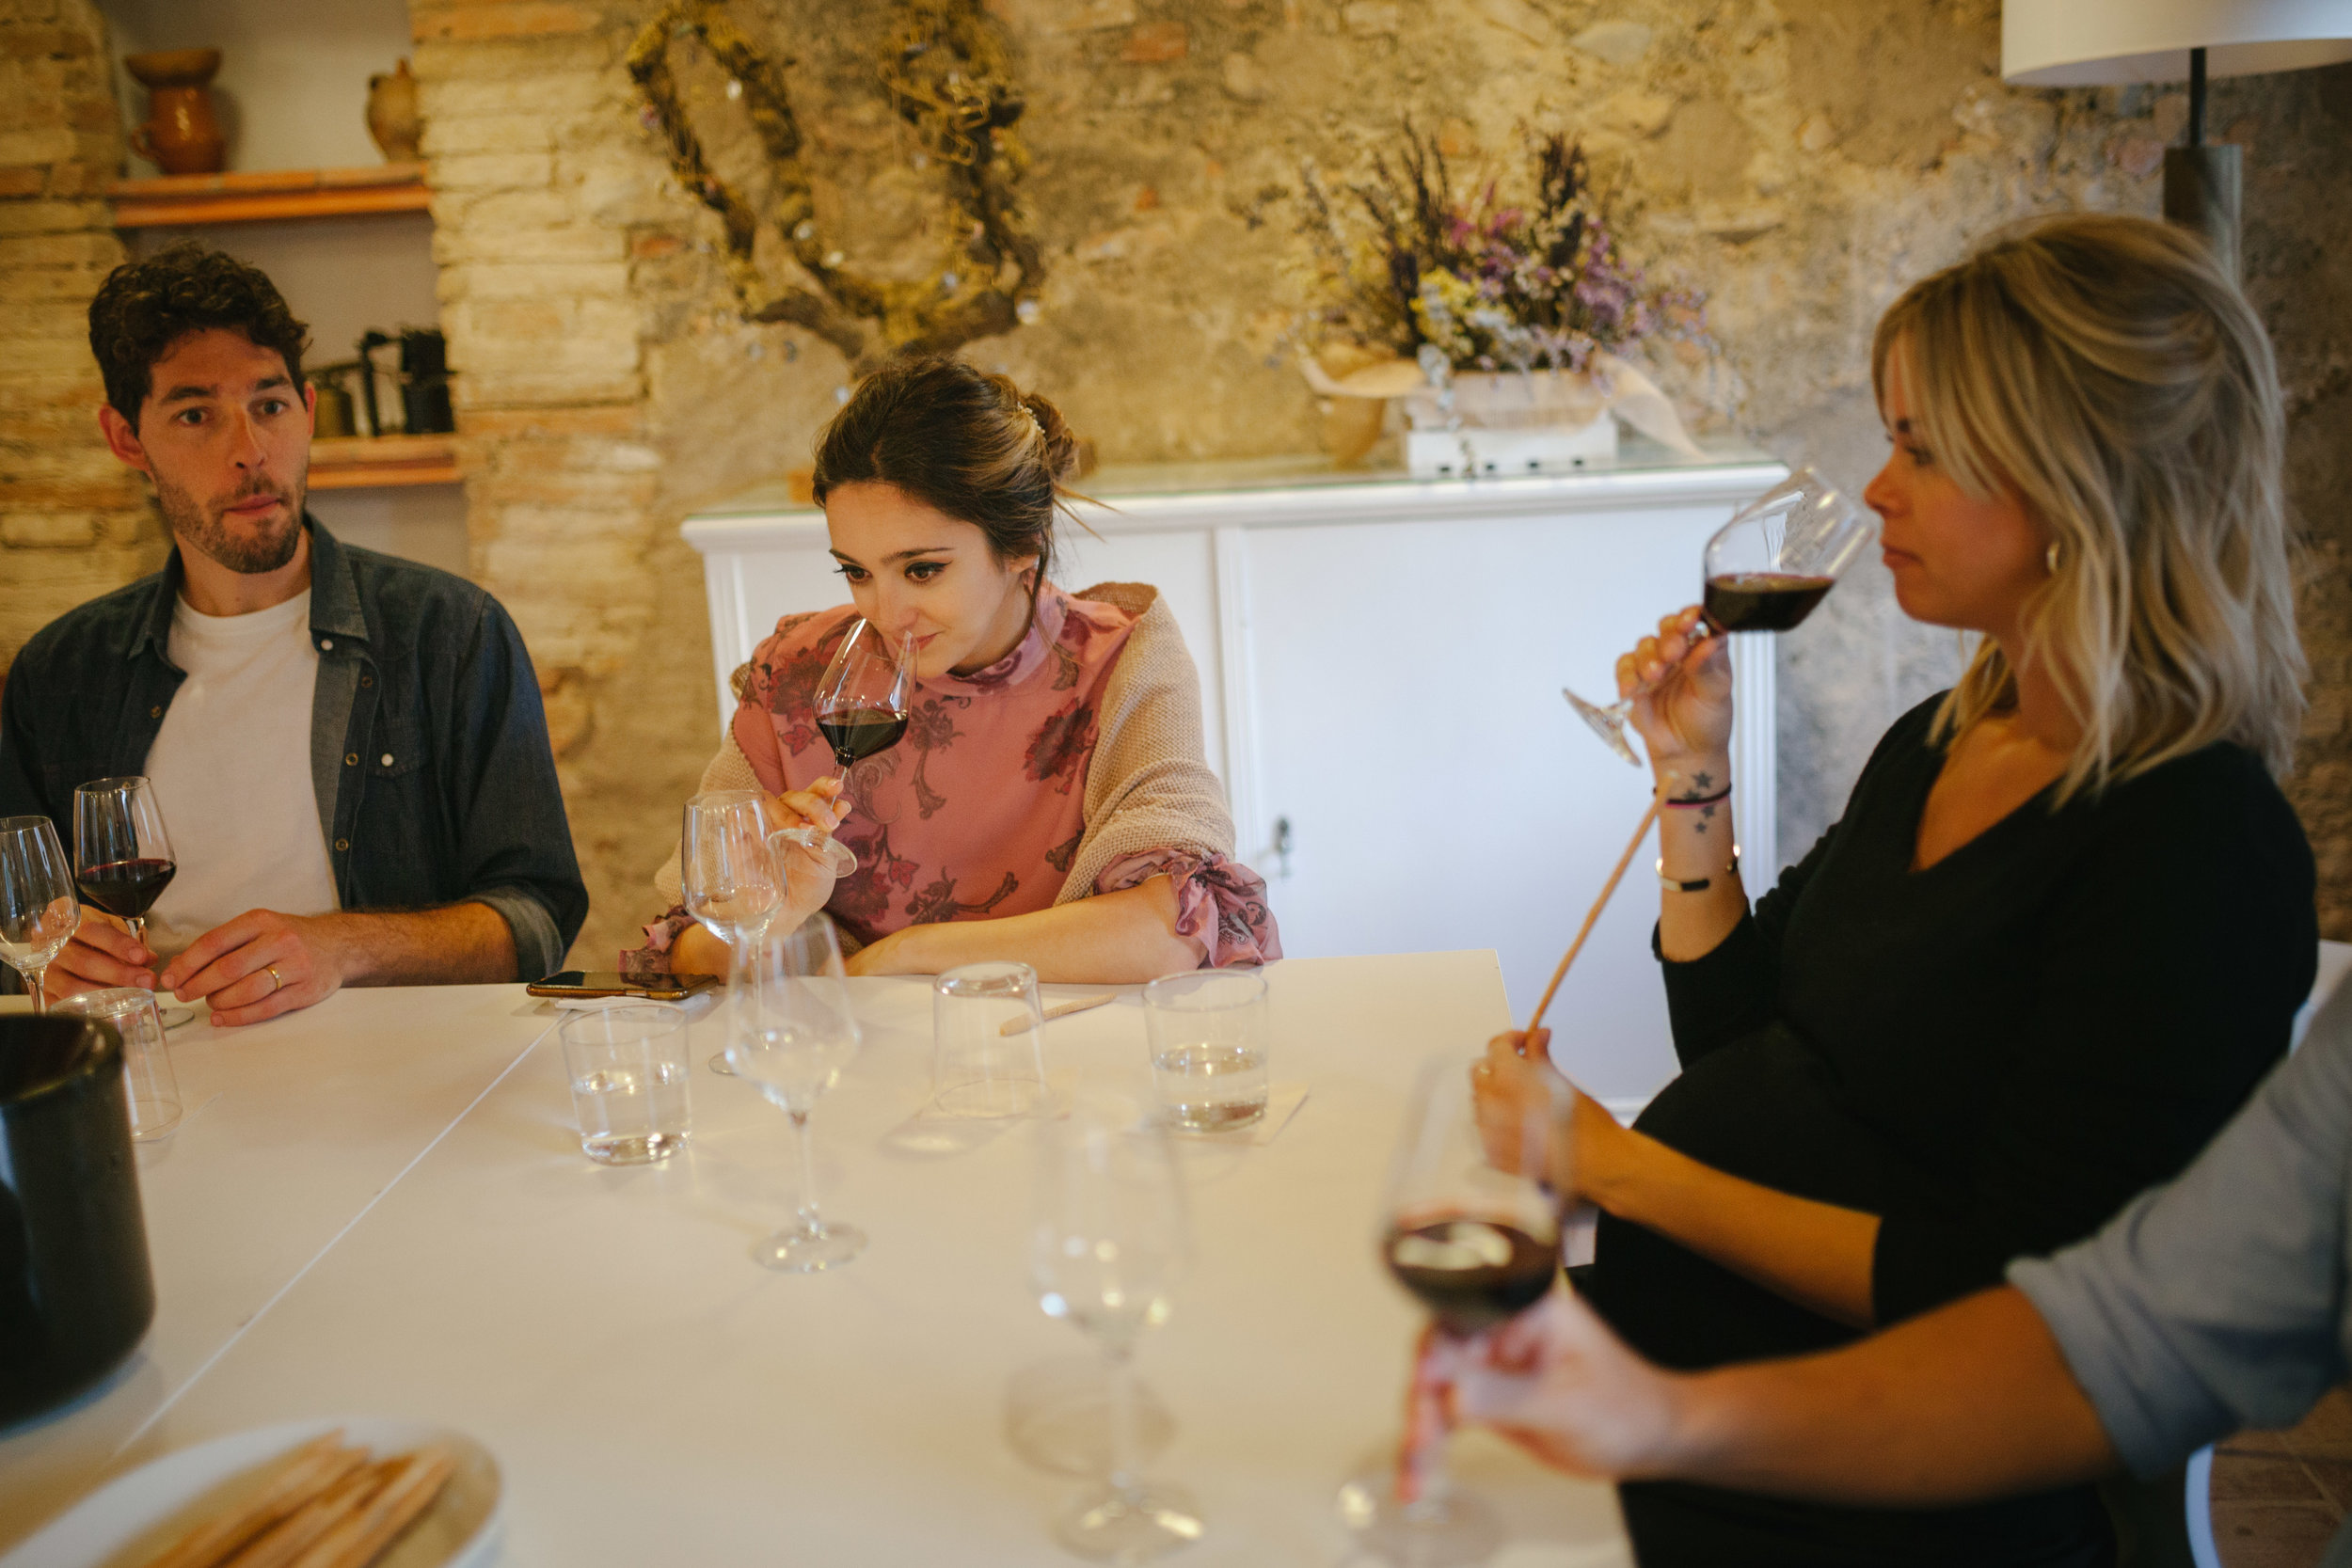 Two women tasting wine